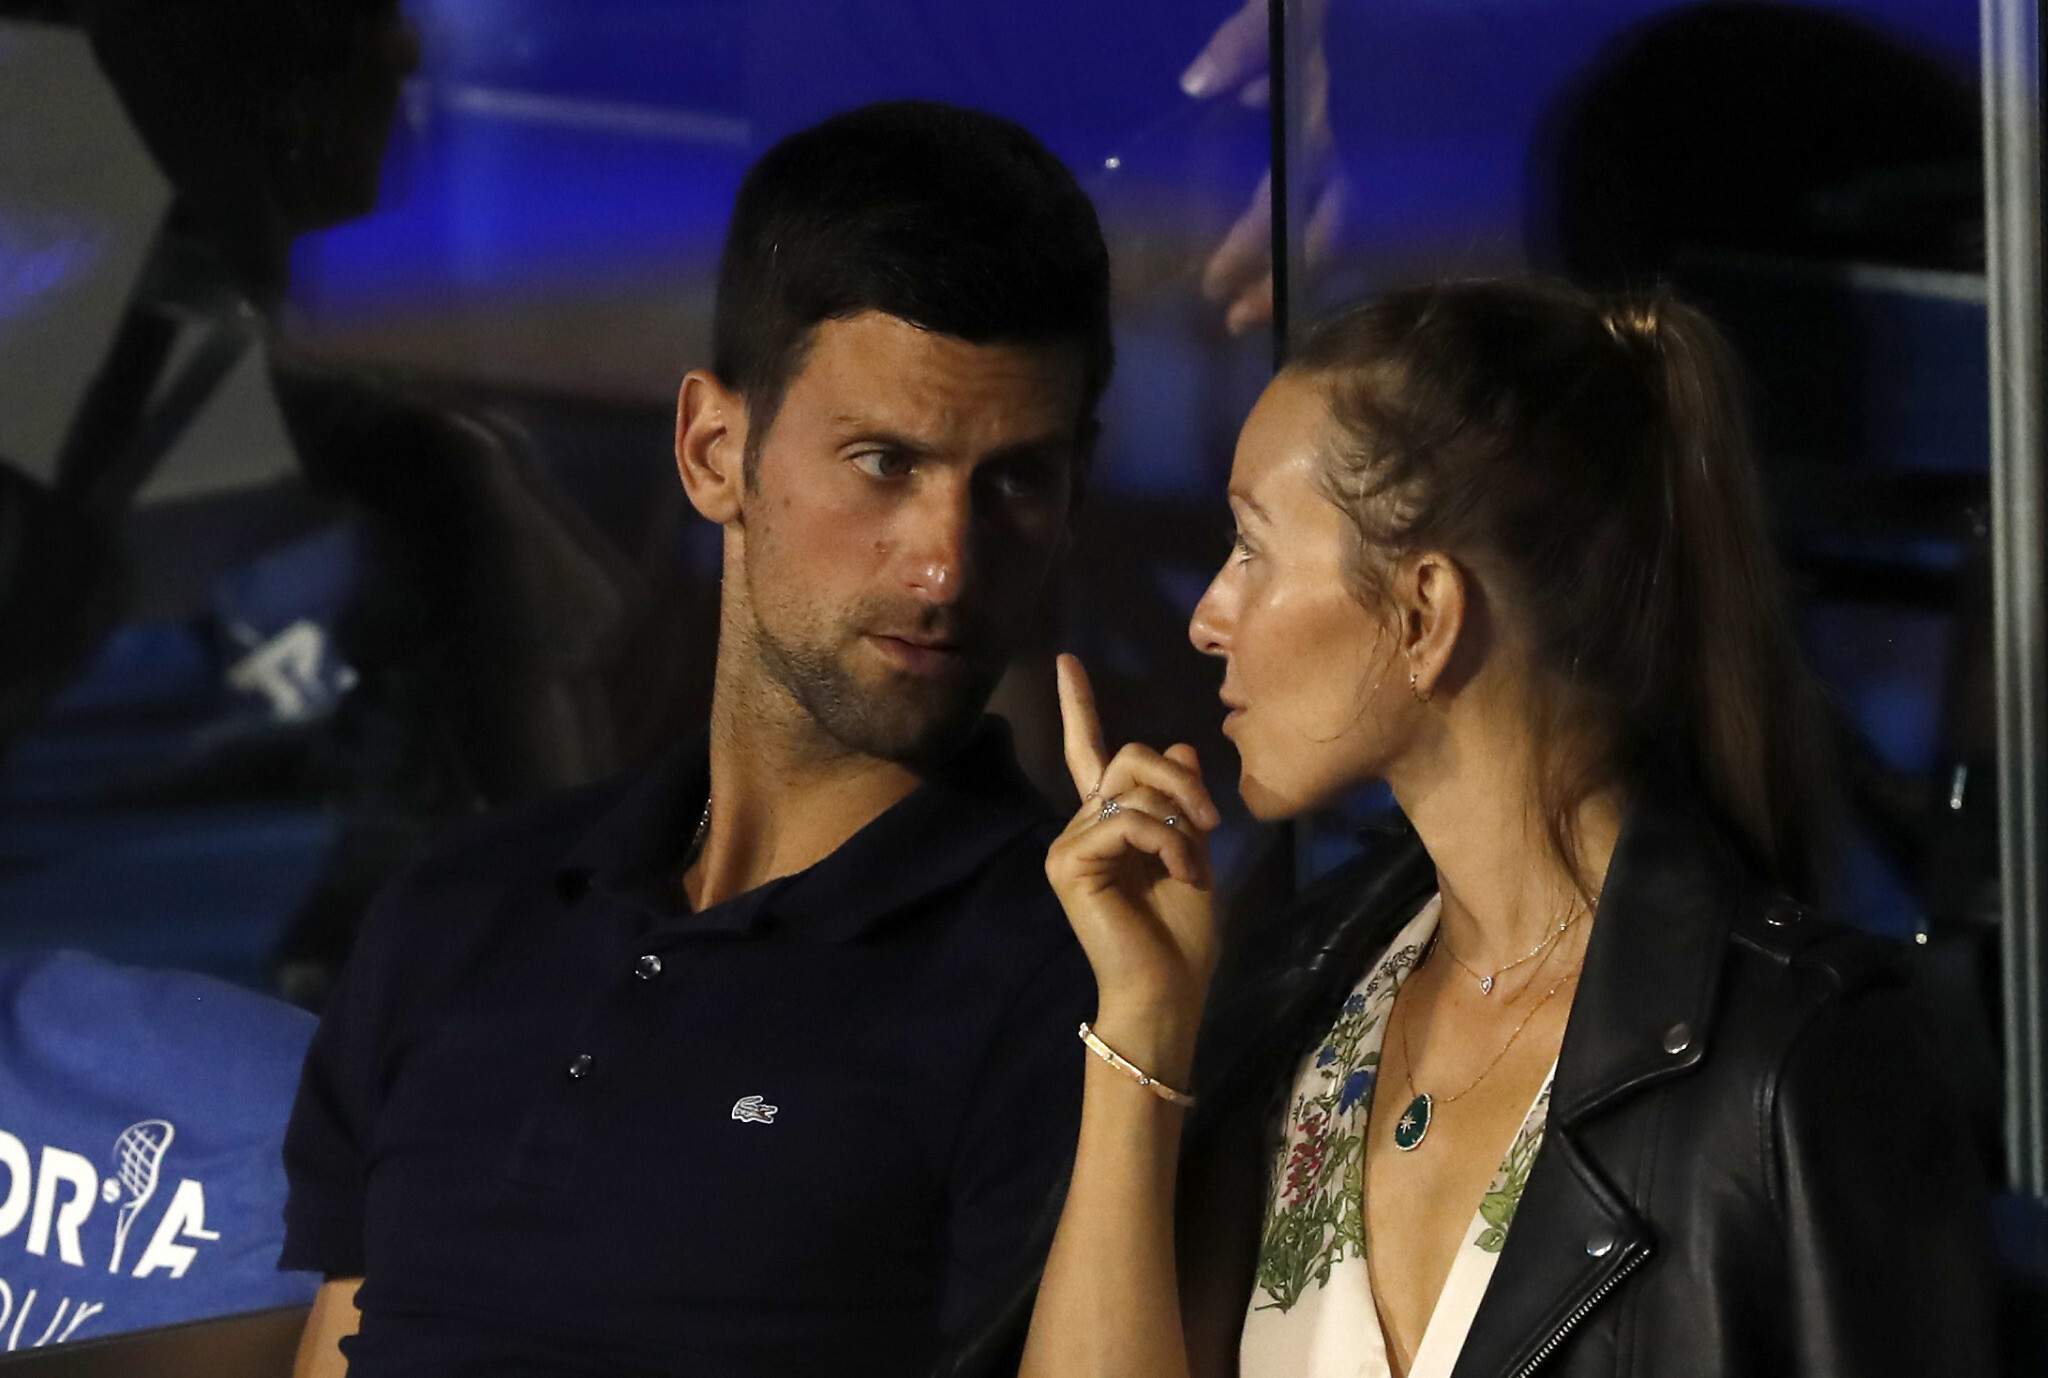 Tennis World No 1 Djokovic Contracts Covid 19 After Tournament He Organized The Times Of Israel